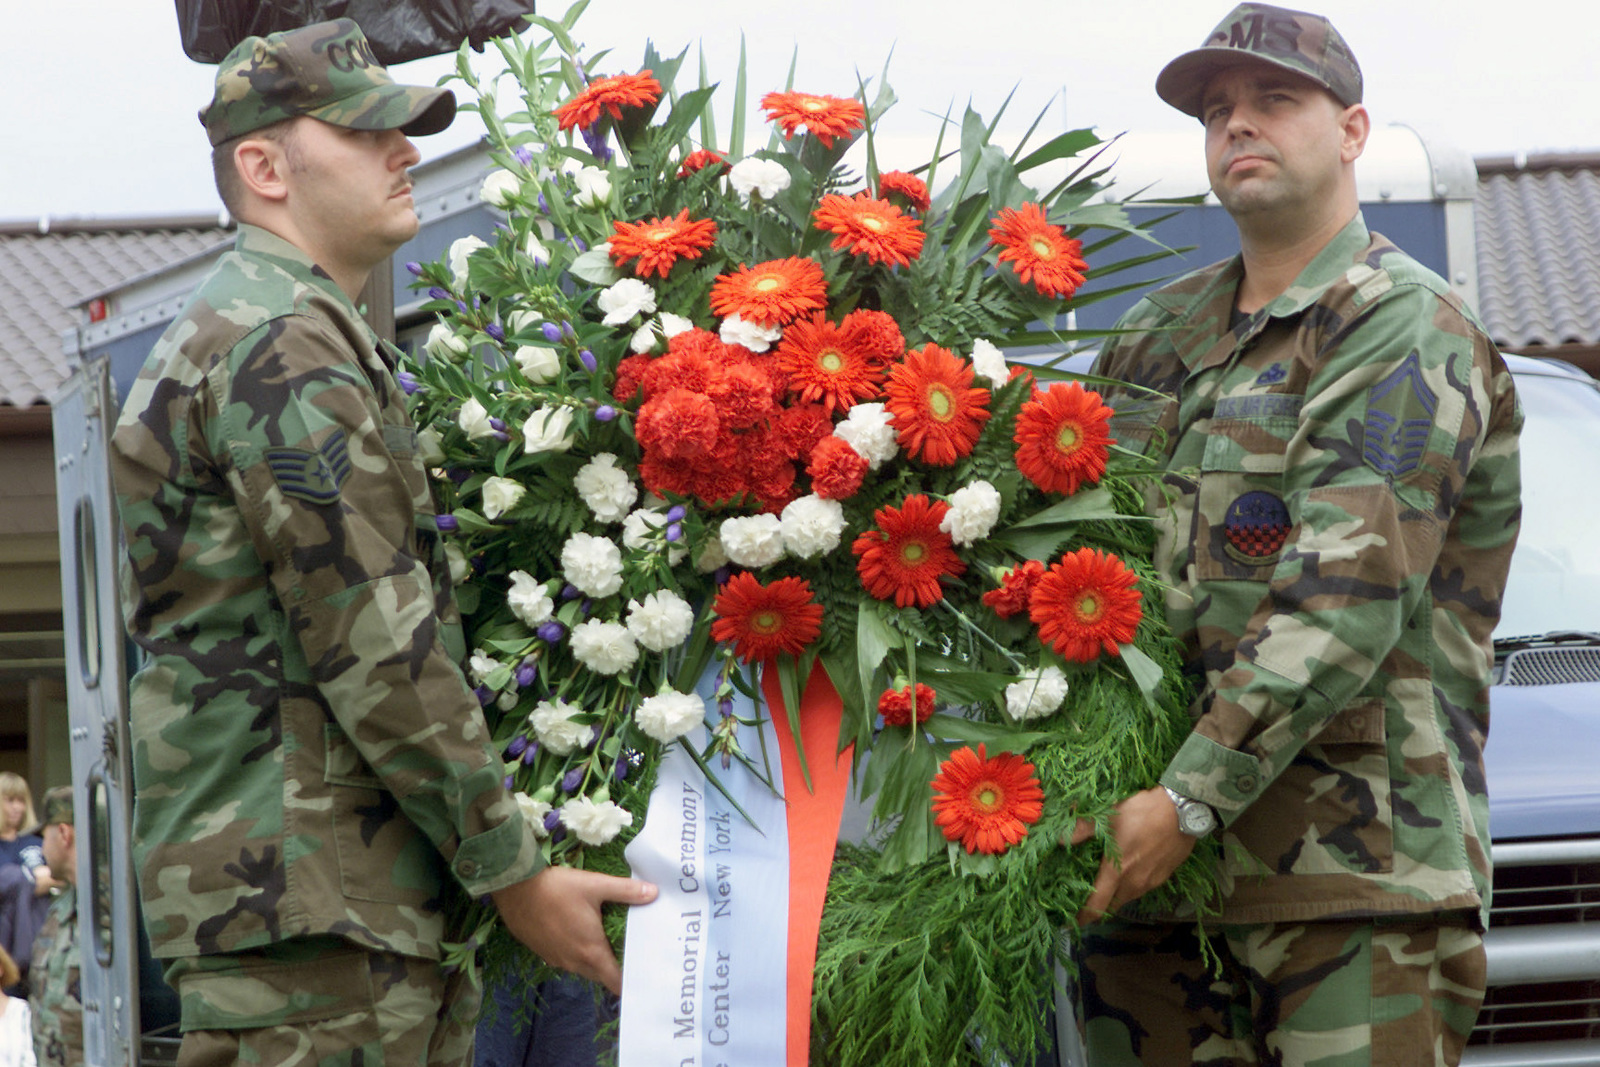 US Air Force (USAF) STAFF Sergeant (SSGT) Leon Cook, left and SENIOR MASTER Sergeant (SMSGT) Robert Cushing lay a wreath to honor the lives lost on September 11th, 2001, during Spangdahlem's Remembrance Ceremony on Patriots Day, at Spangdahlem Air Base (AB), Germany